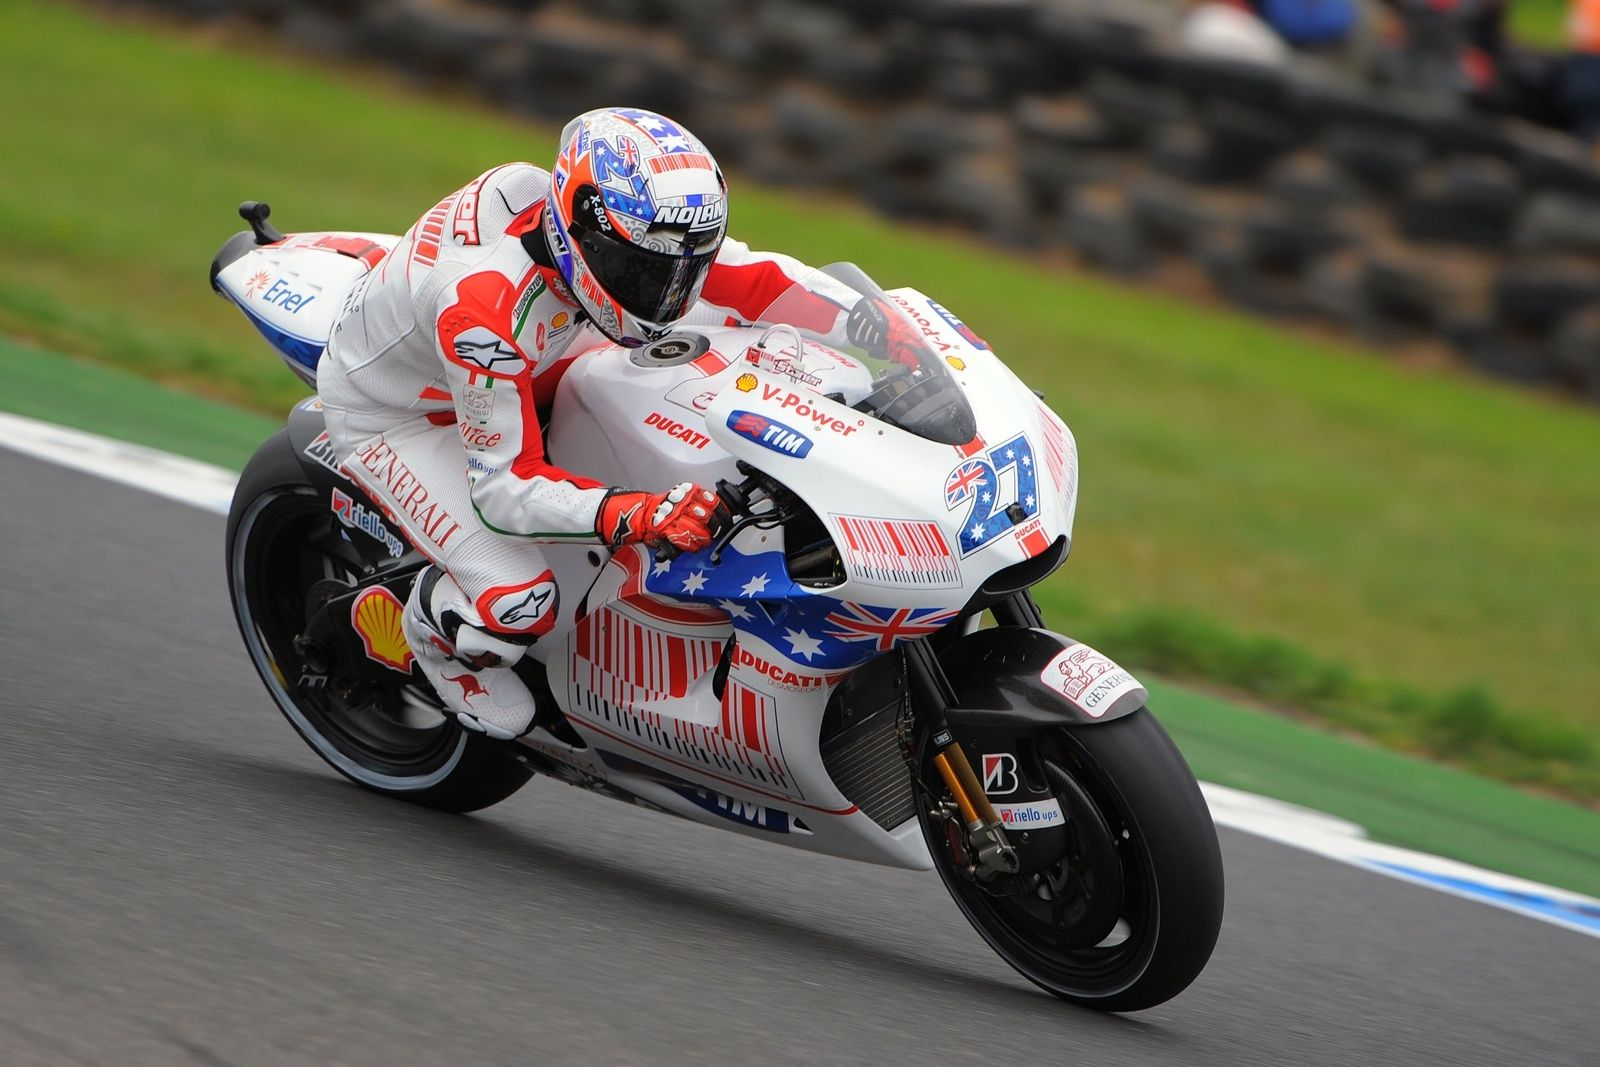 Casey Stoner Action Shots Ducati Motogp Racing Motorcycles